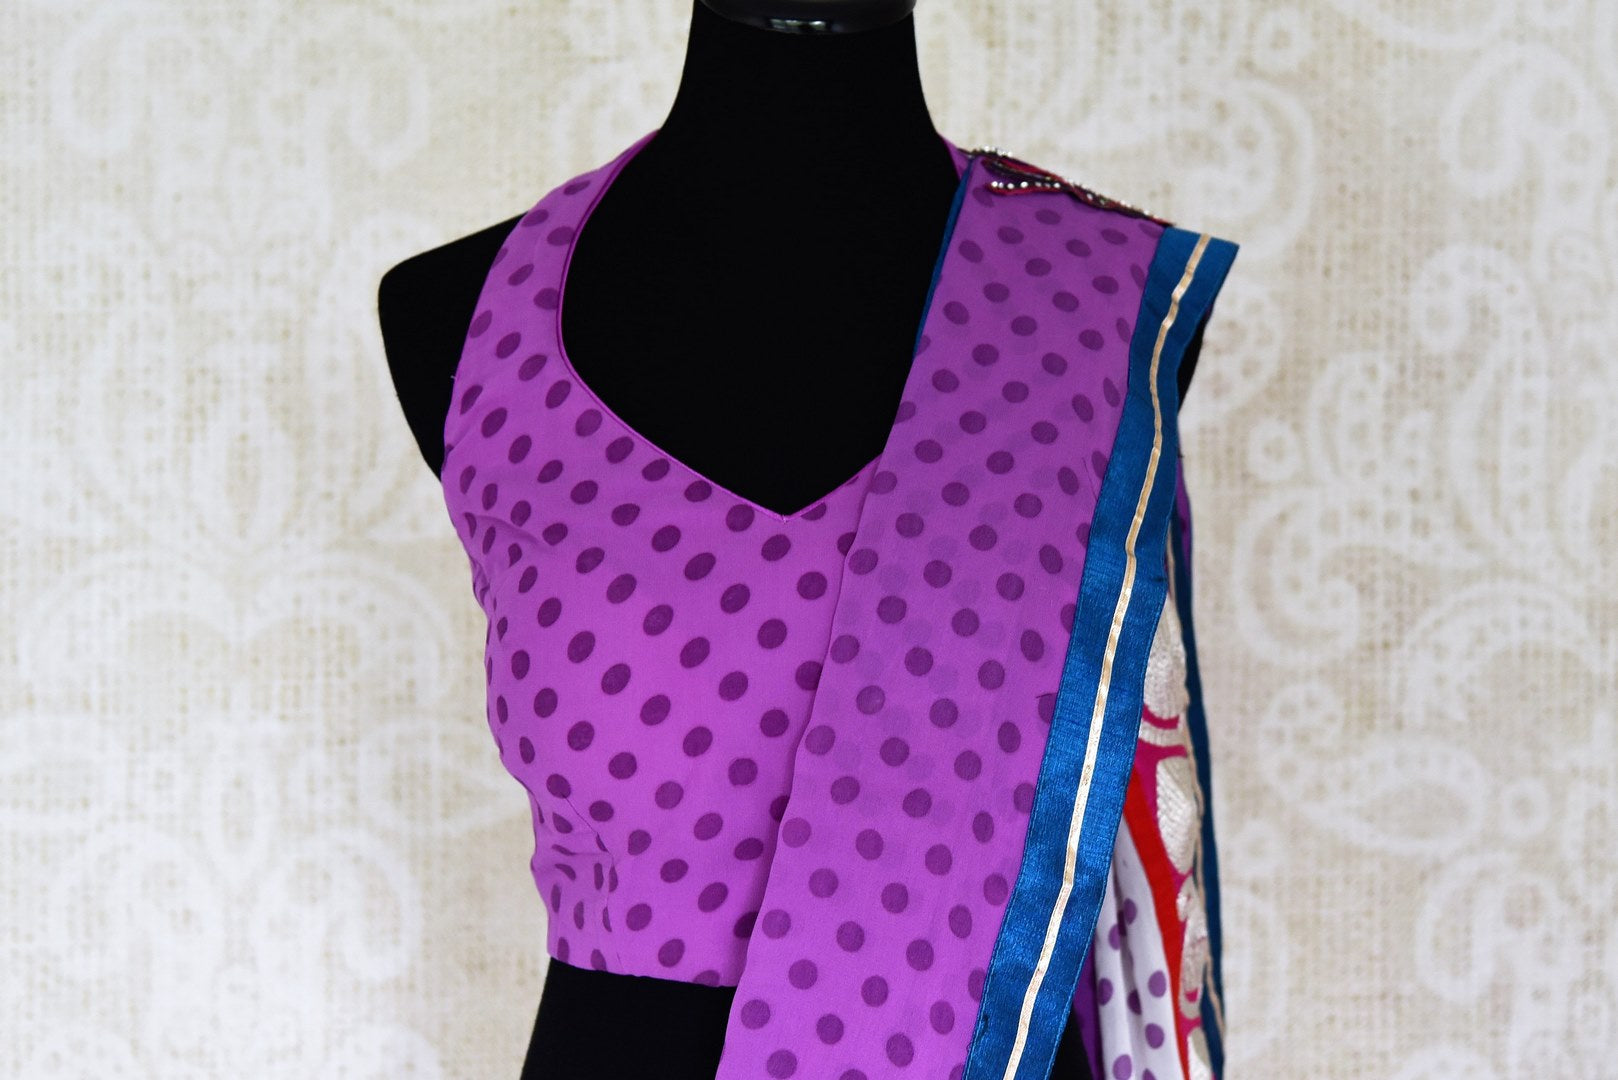 Buy purple and white polka dot georgette saree online in USA with embroidery. Shop the latest designer saris for weddings and special occasions from Pure Elegance Indian clothing store in USA.-blouse pallu